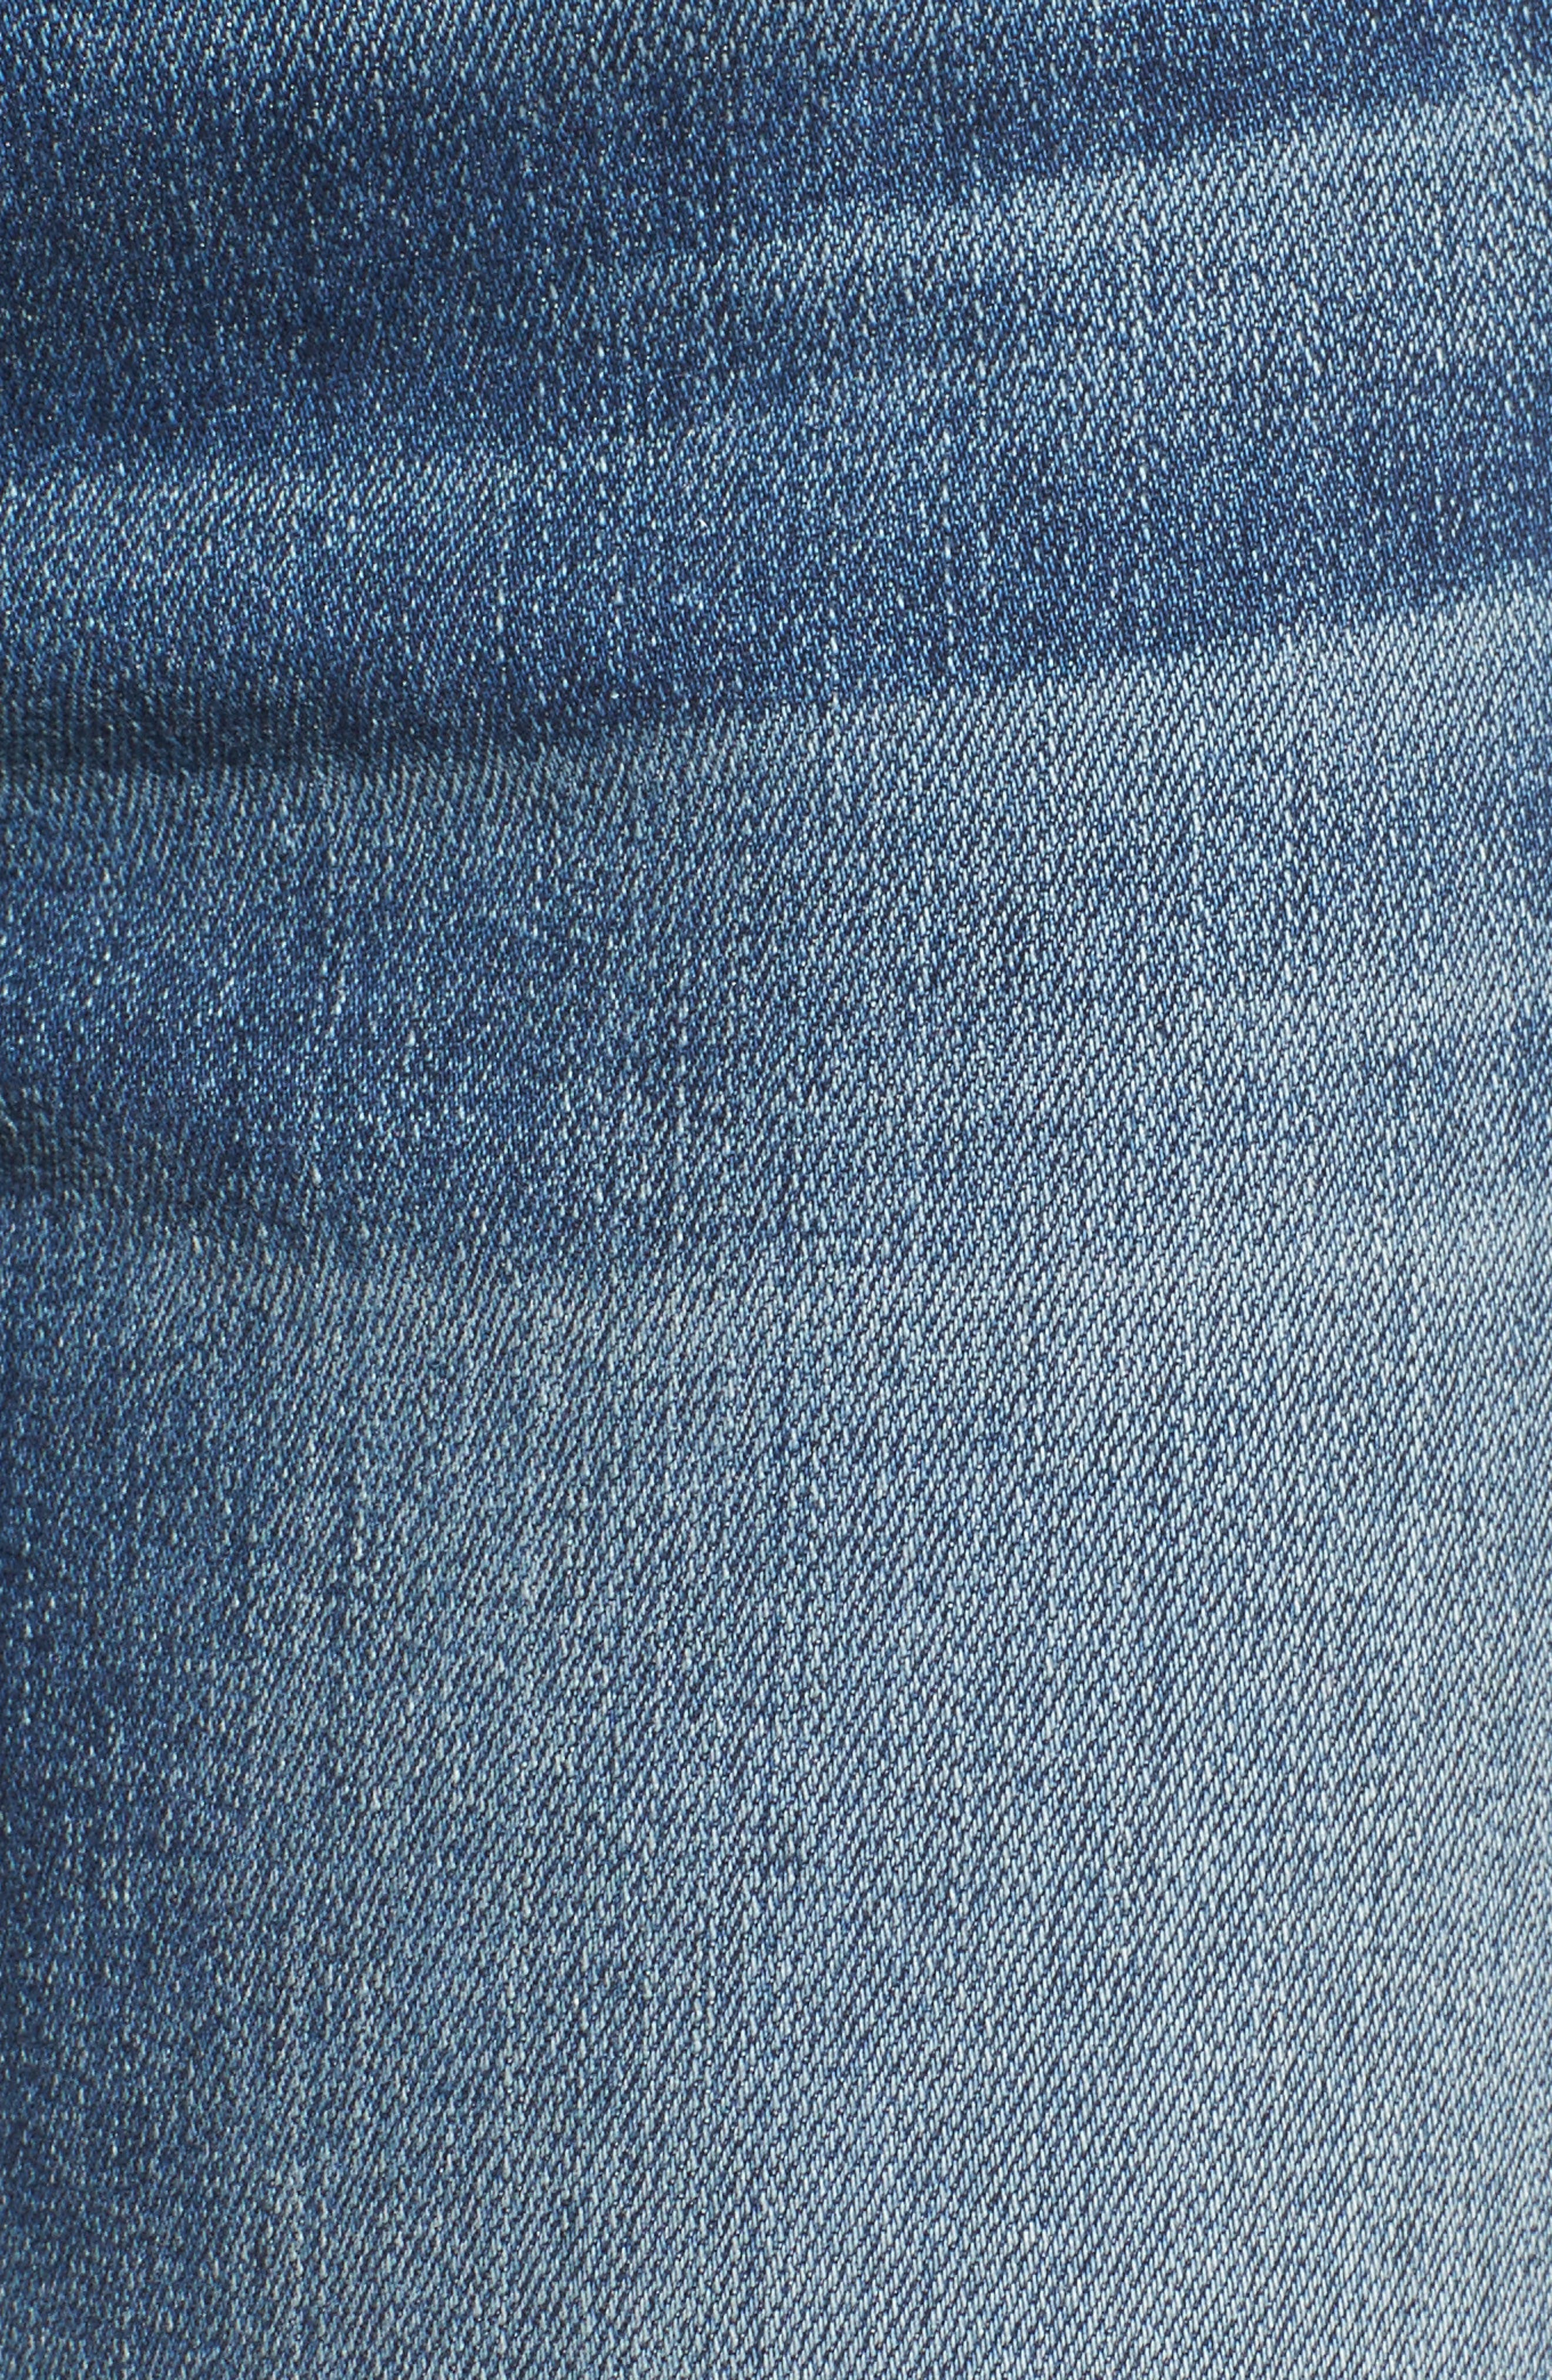 Alternate Image 5  - 7 For All Mankind® Crop Bootcut Jeans (Wall Street Heritage)